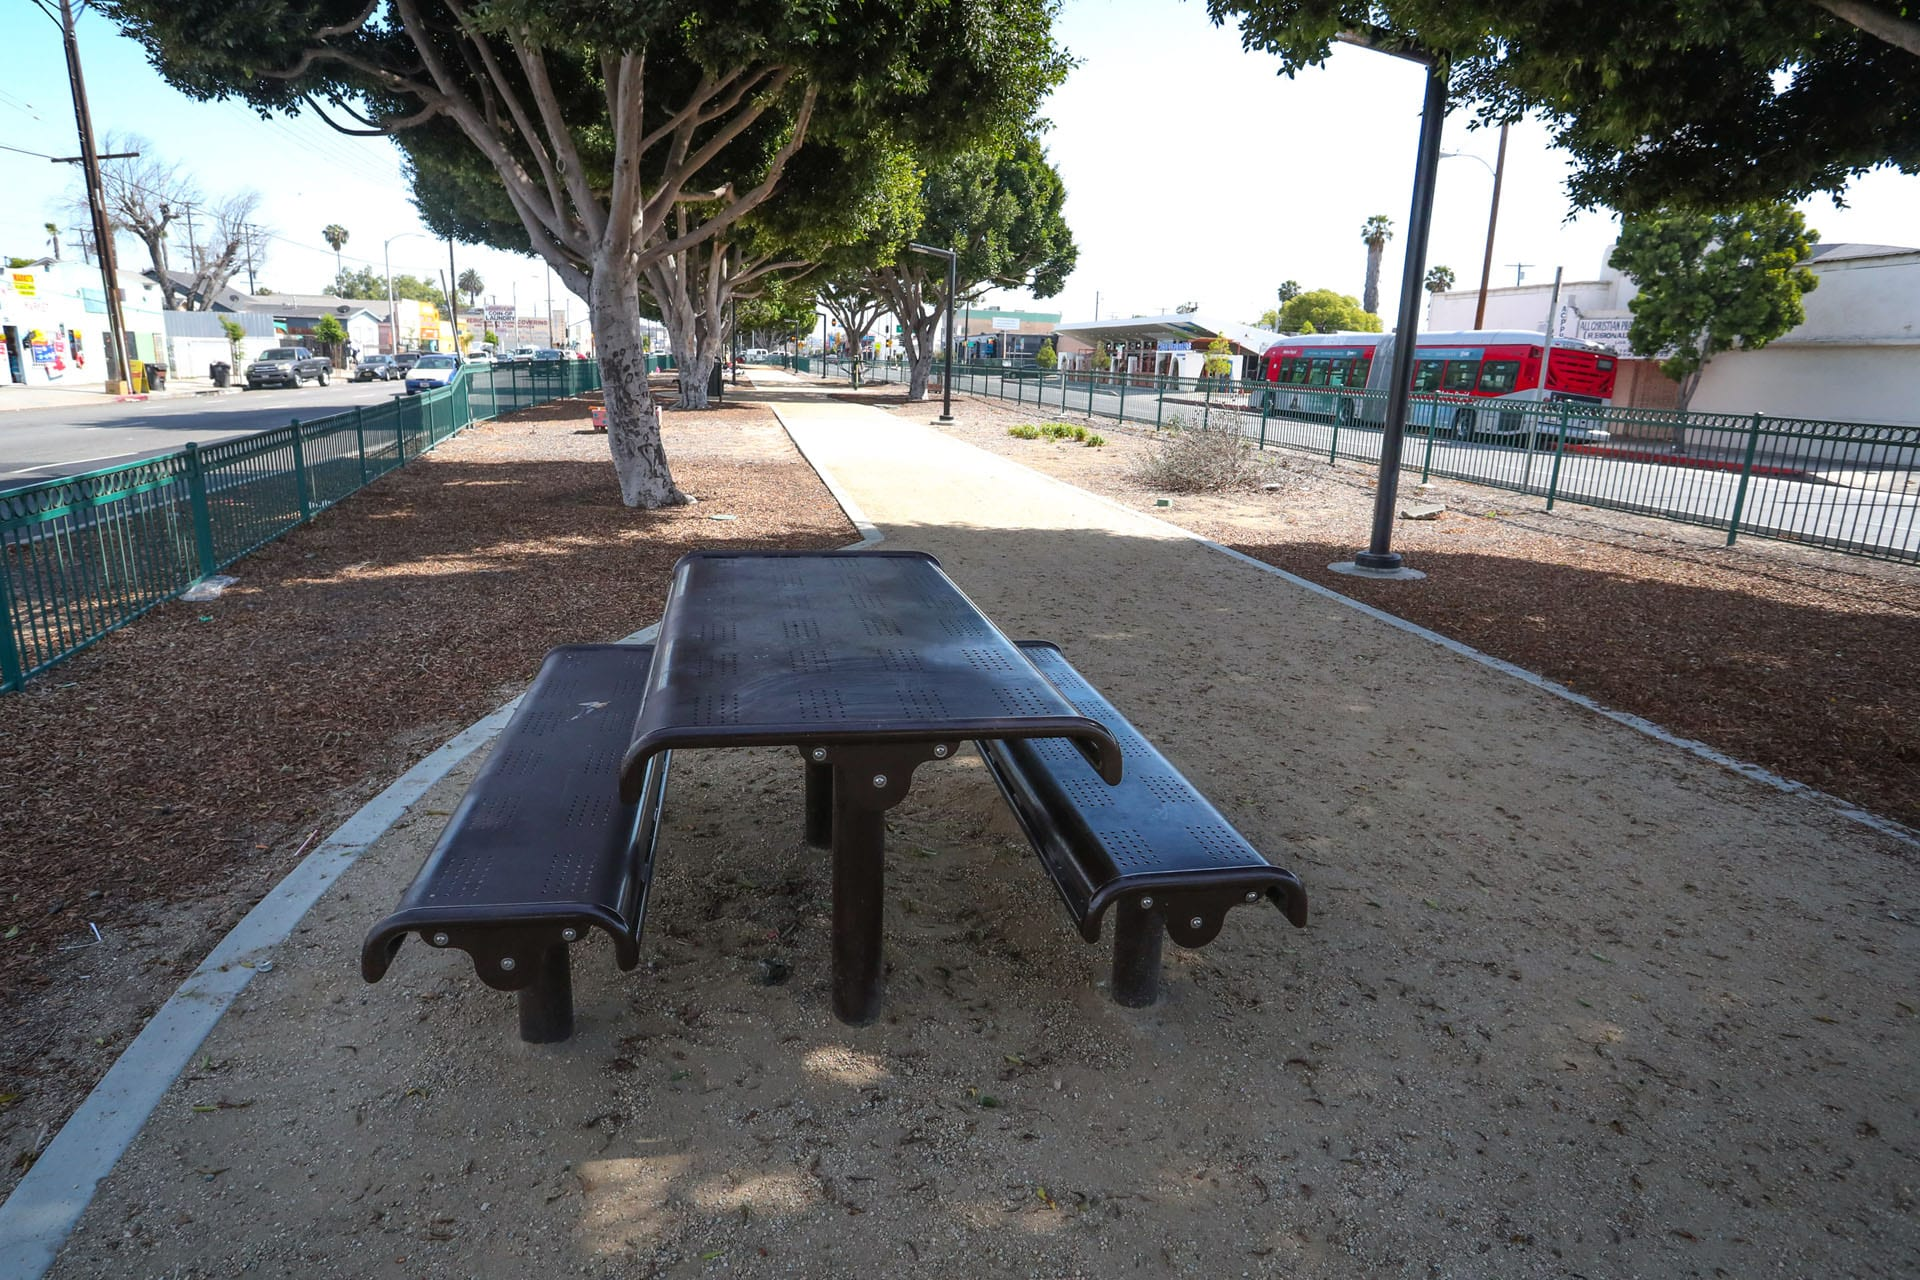 Picnic table next to bench